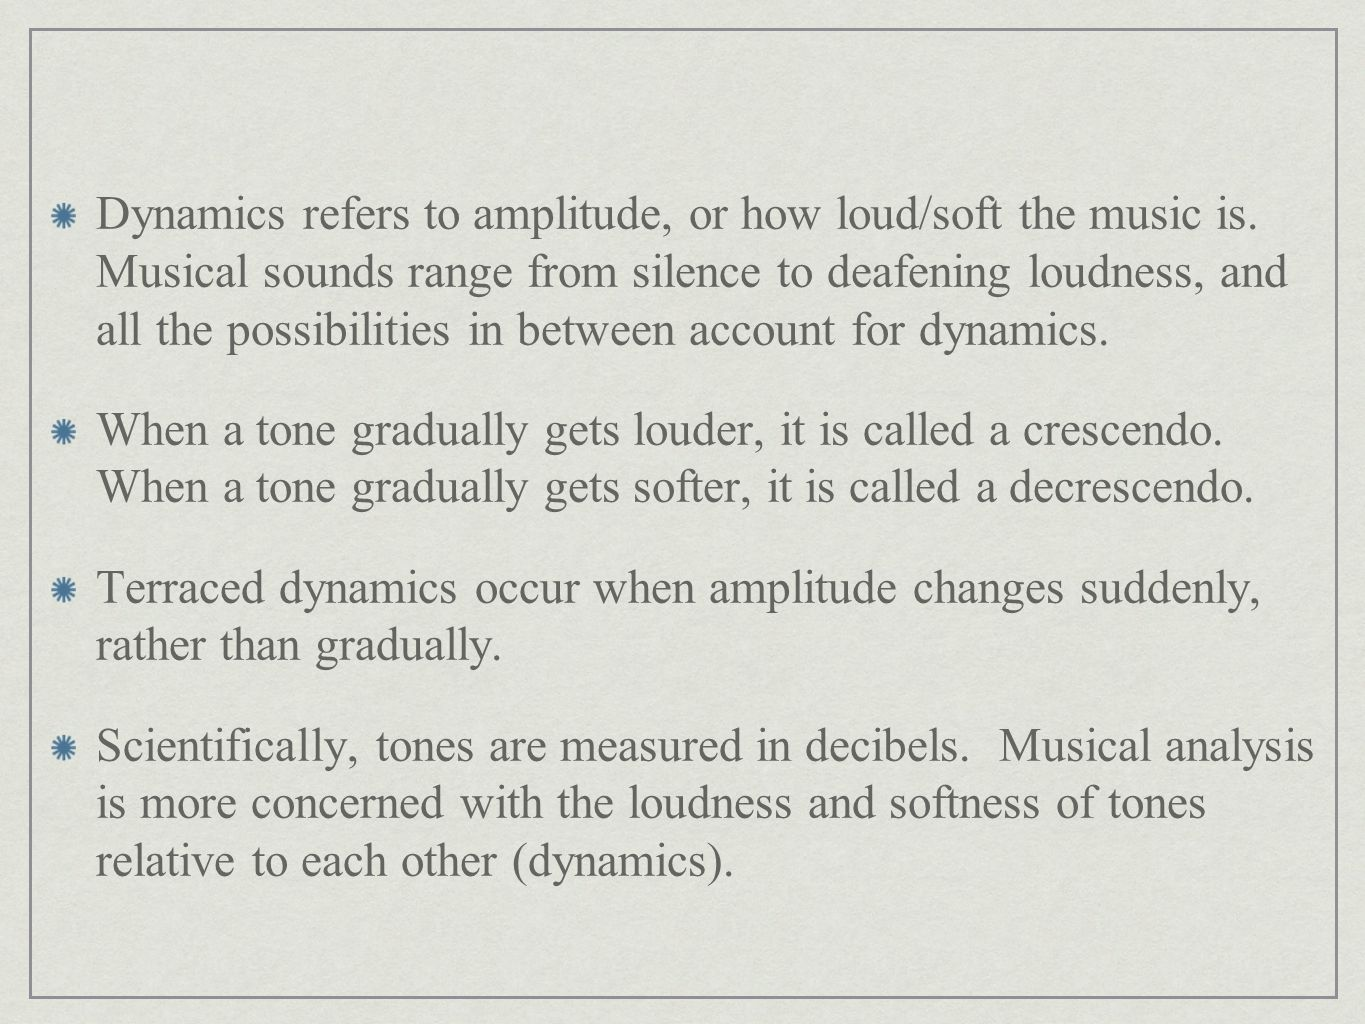 Dynamics refers to amplitude, or how loud/soft the music is.